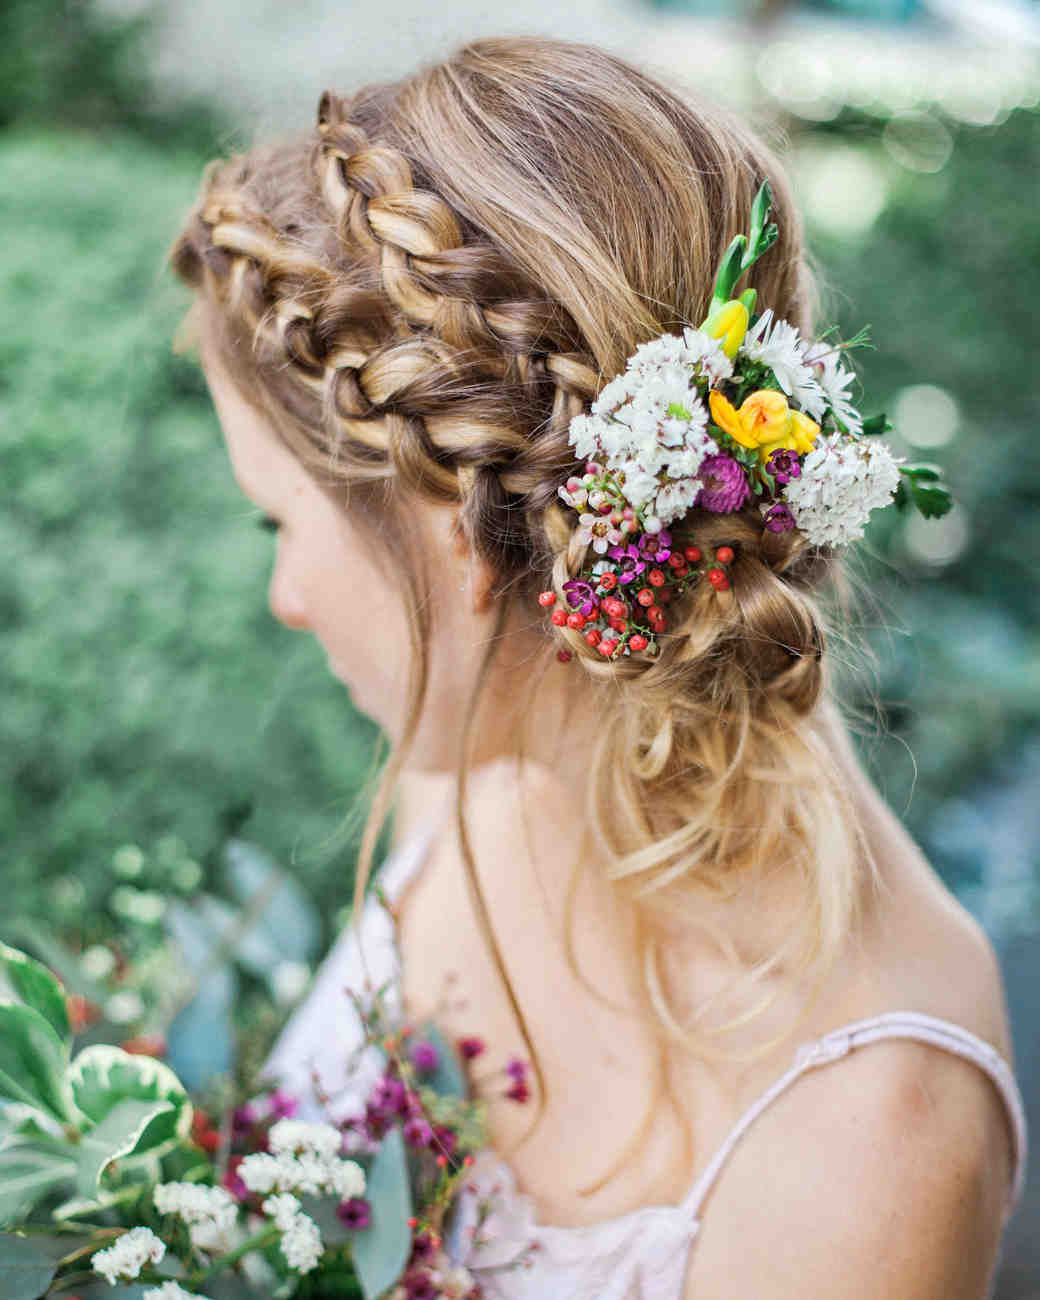 Wedding Hairstyle With Braids: 10 Ways To Upgrade The Wedding Braid